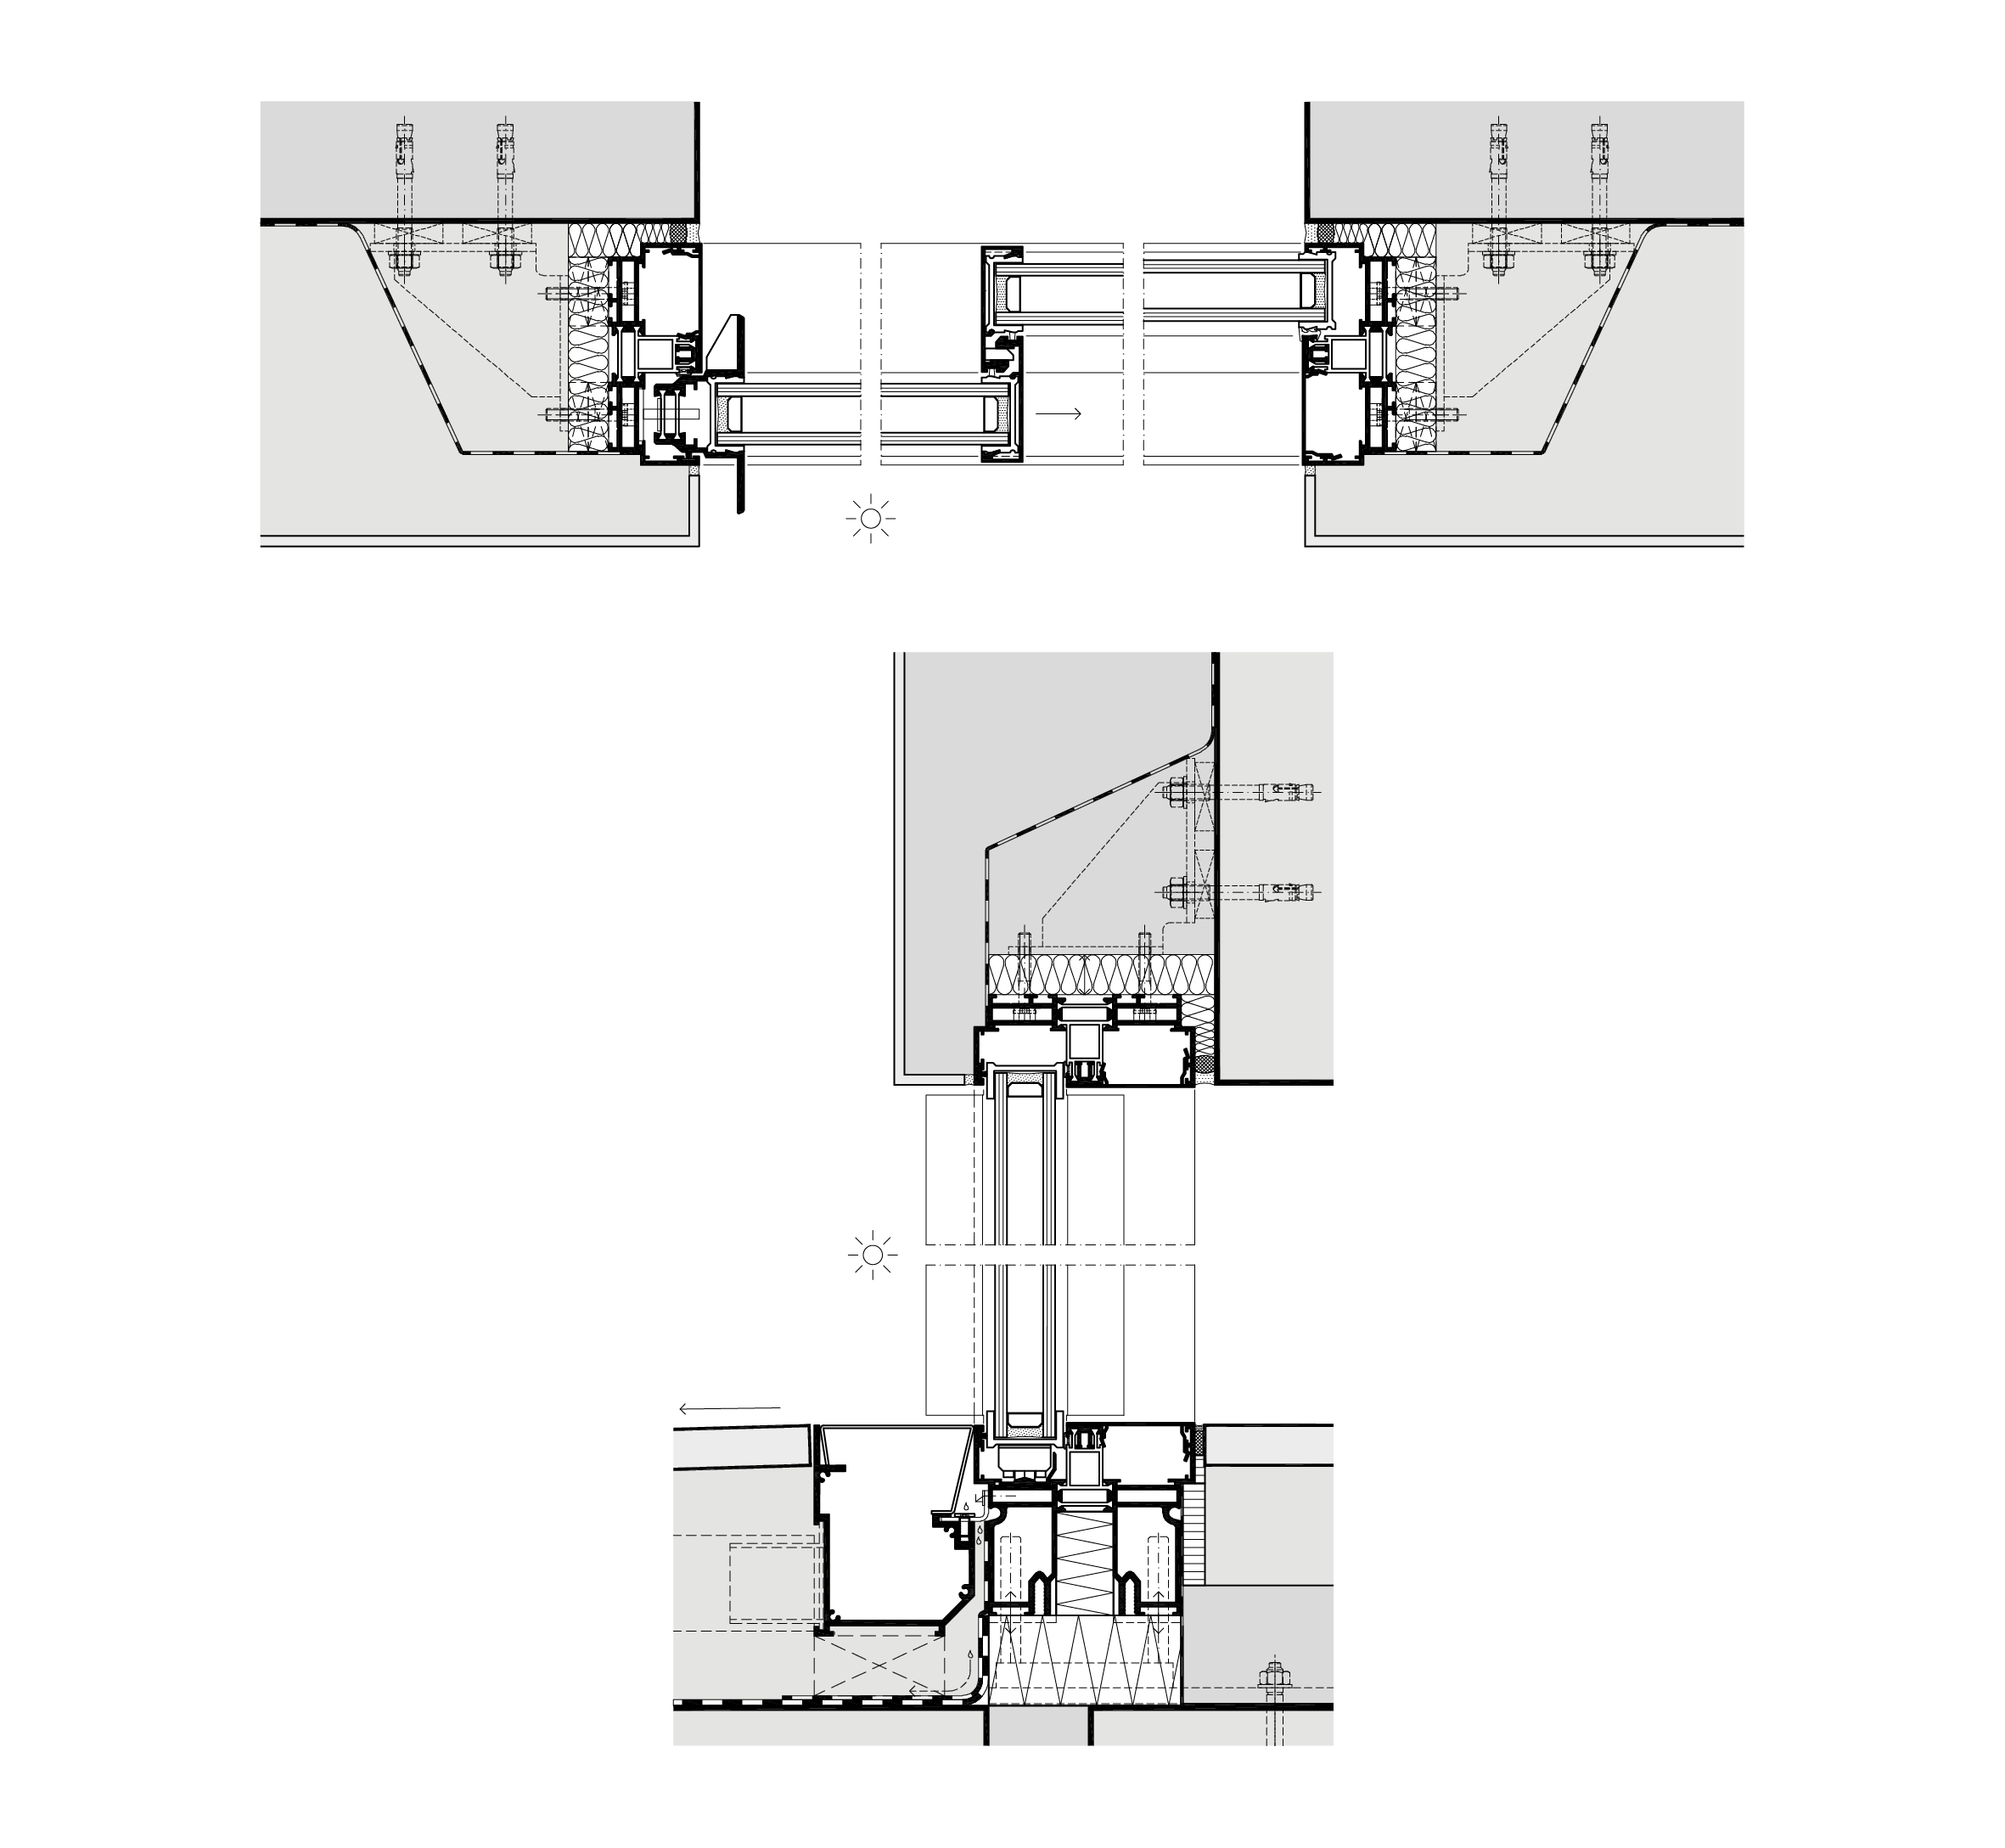 Technical Drawing Sky Frame 2.png 2362x2177 Q90 Subsampling 2